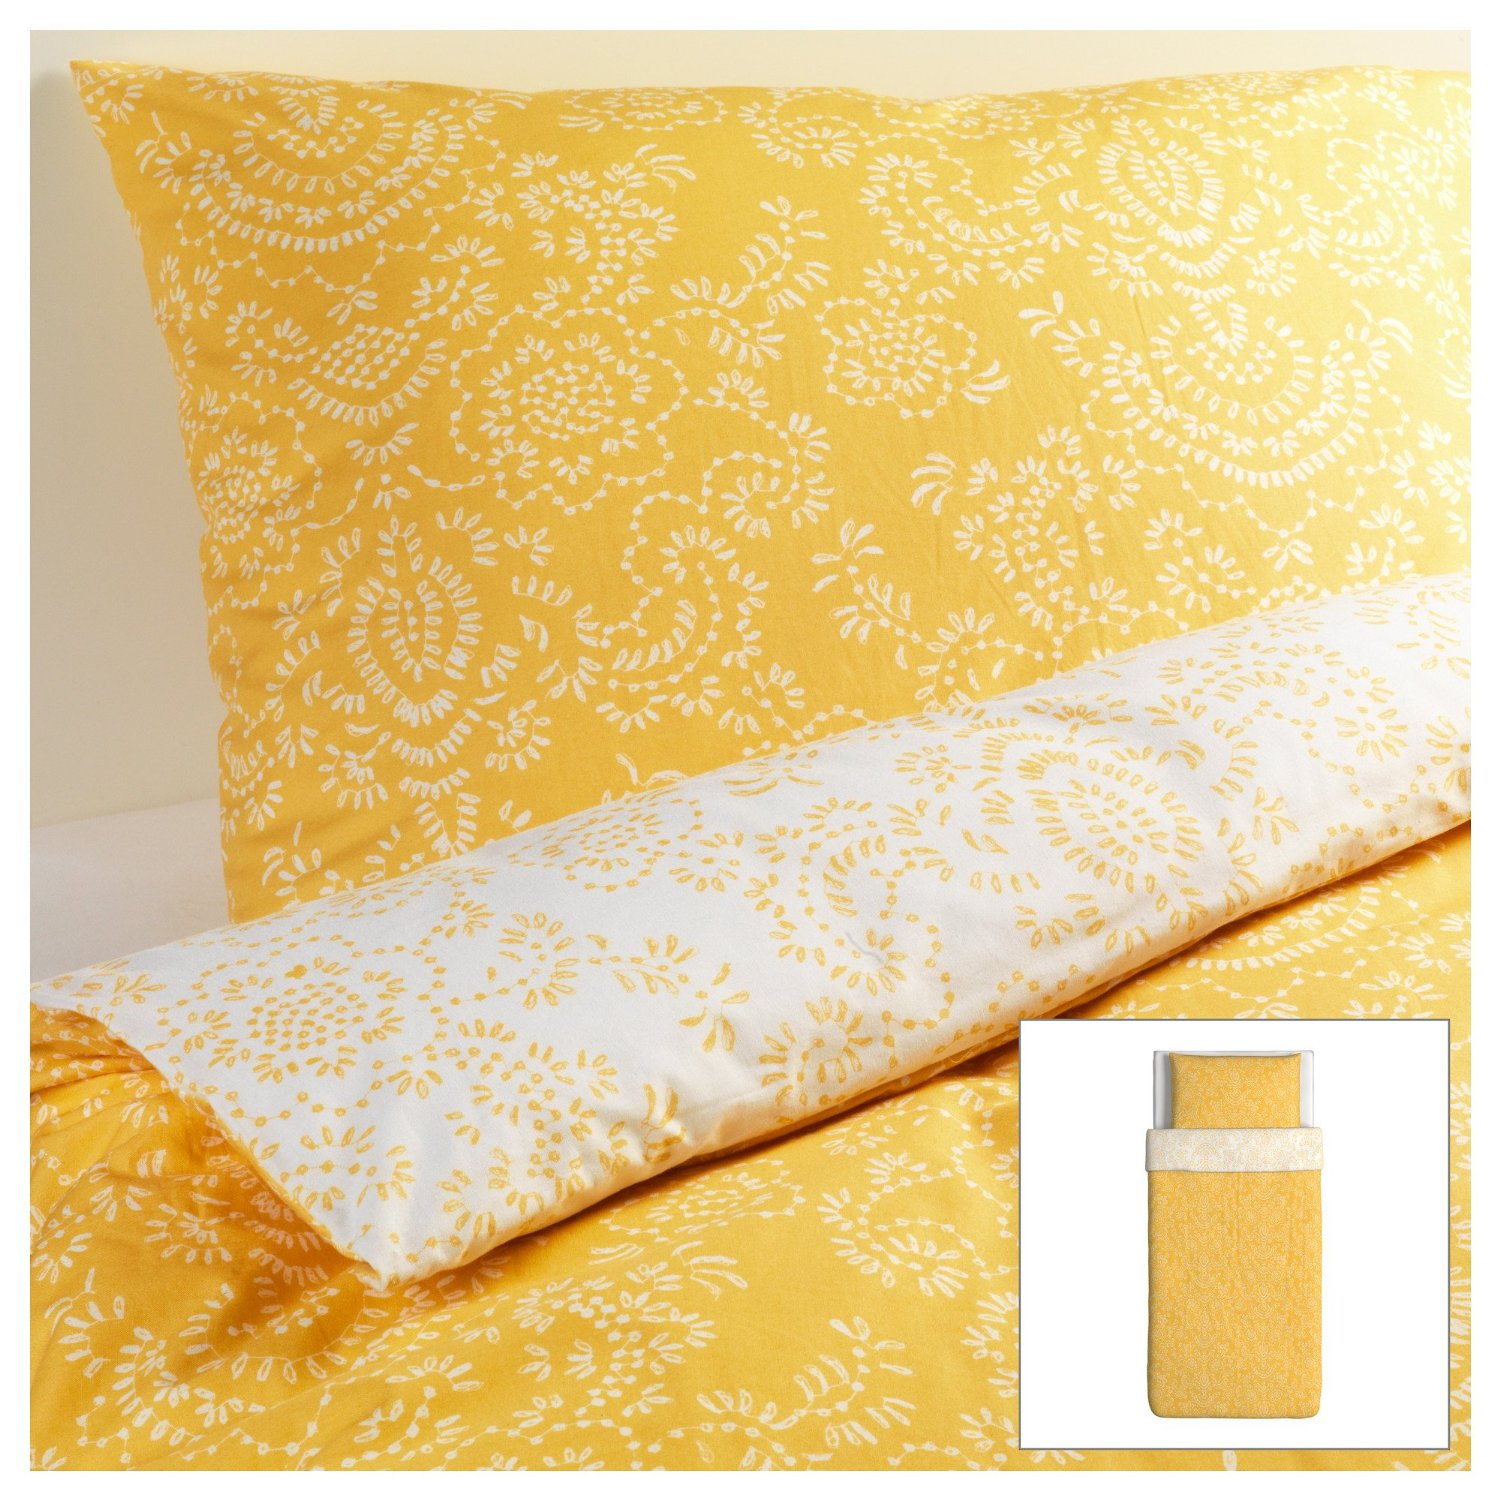 Mustard yellow comforters and bedding sets for Mustard bathroom accessories uk